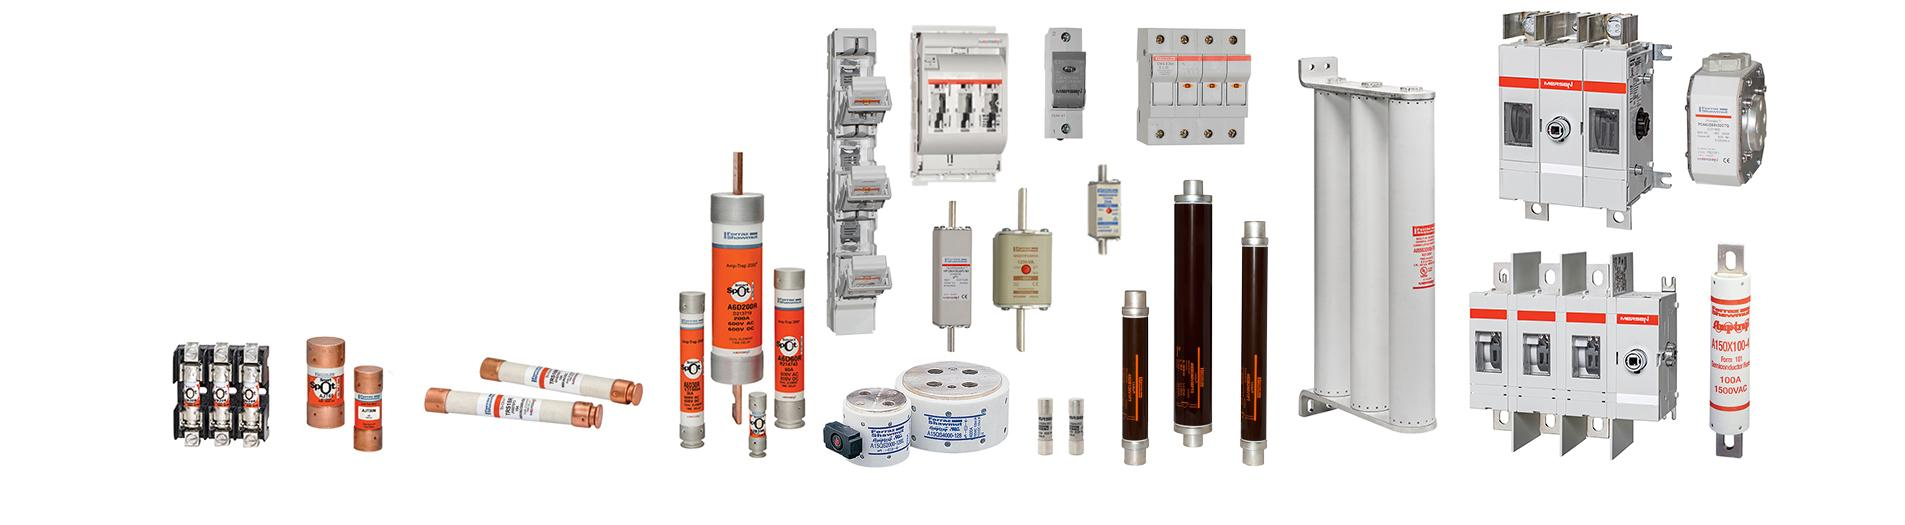 hight resolution of  welcome page photo of global fuses and fusegear